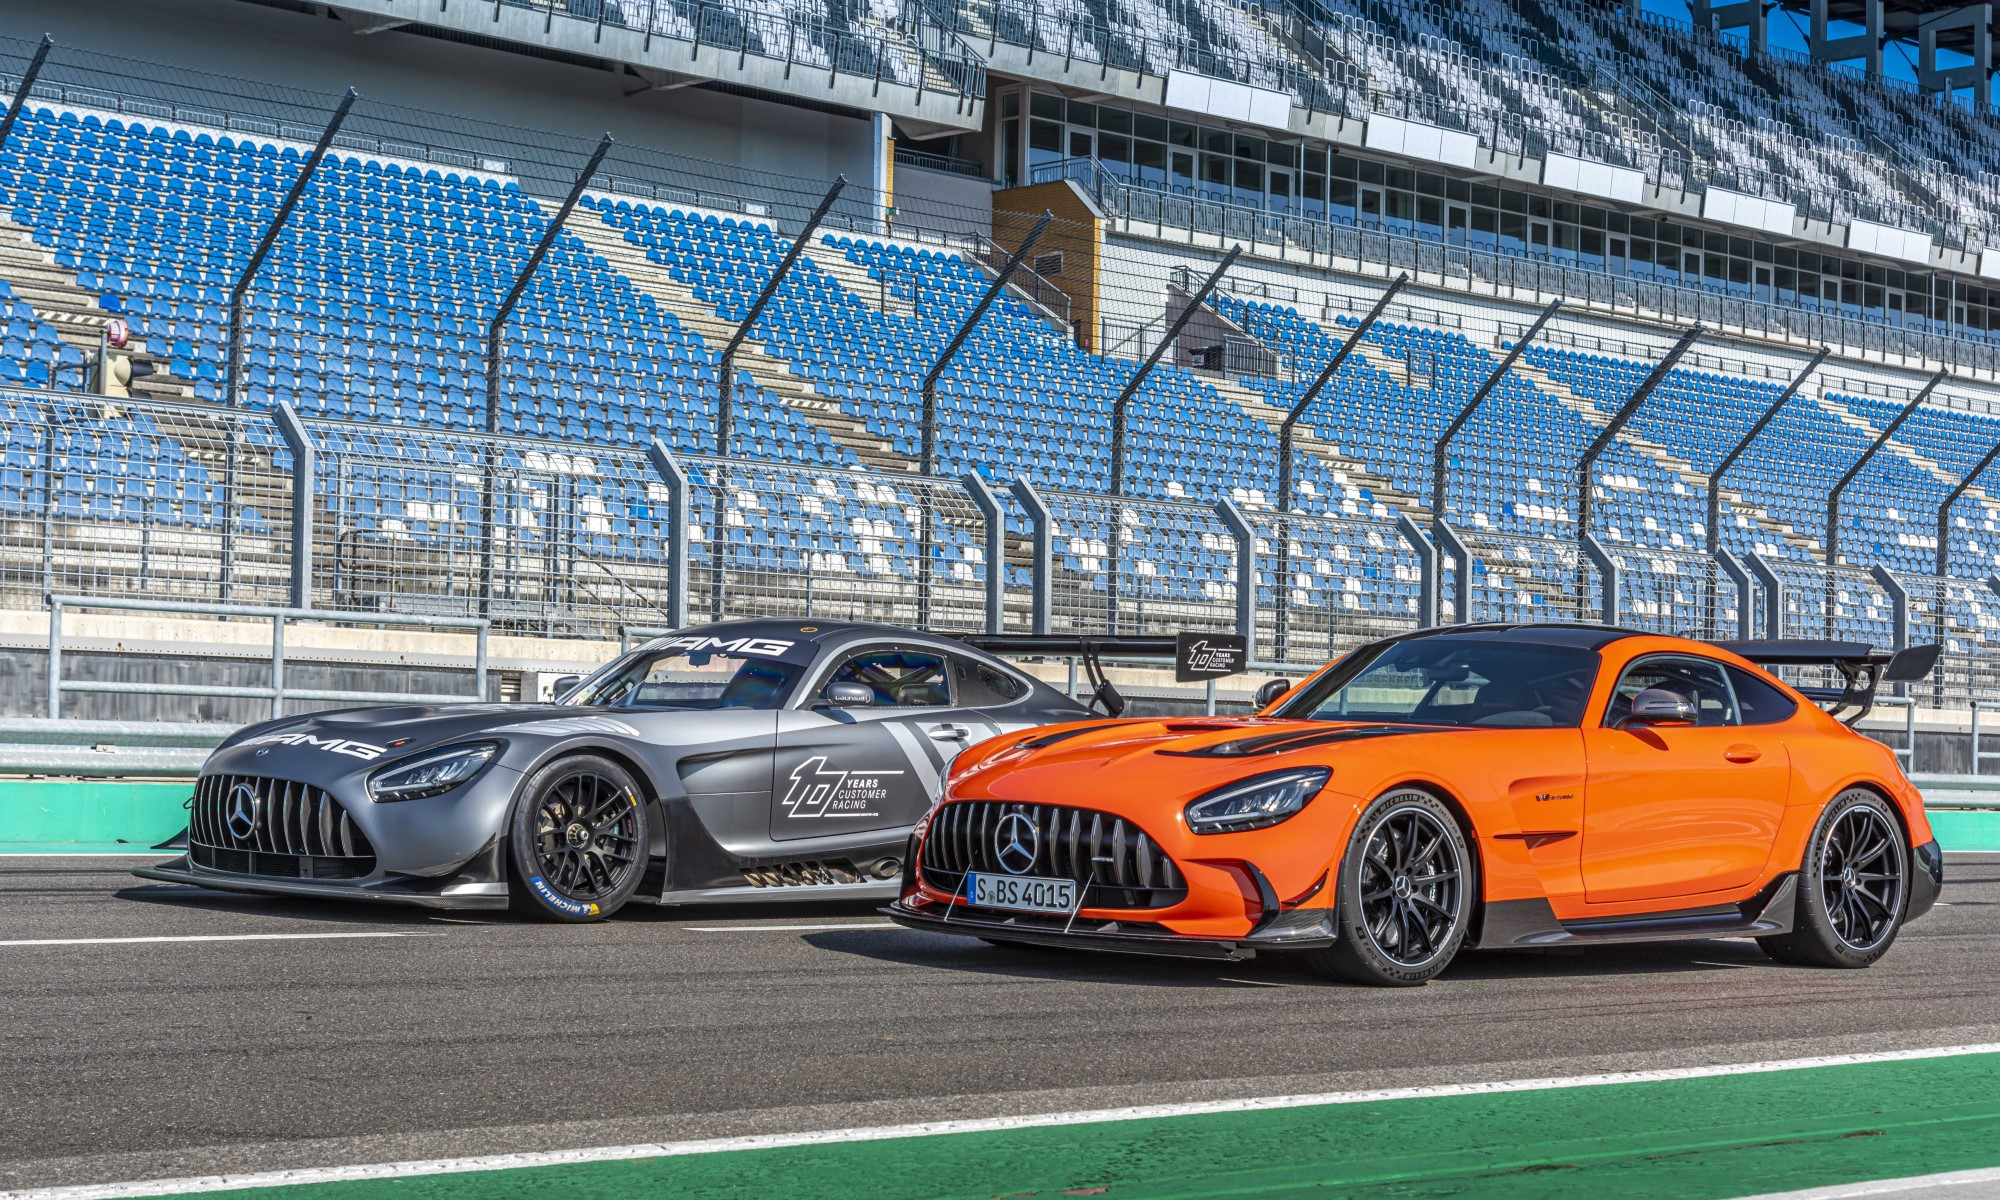 Mercedes-AMG GT Black Series with GT3 racer